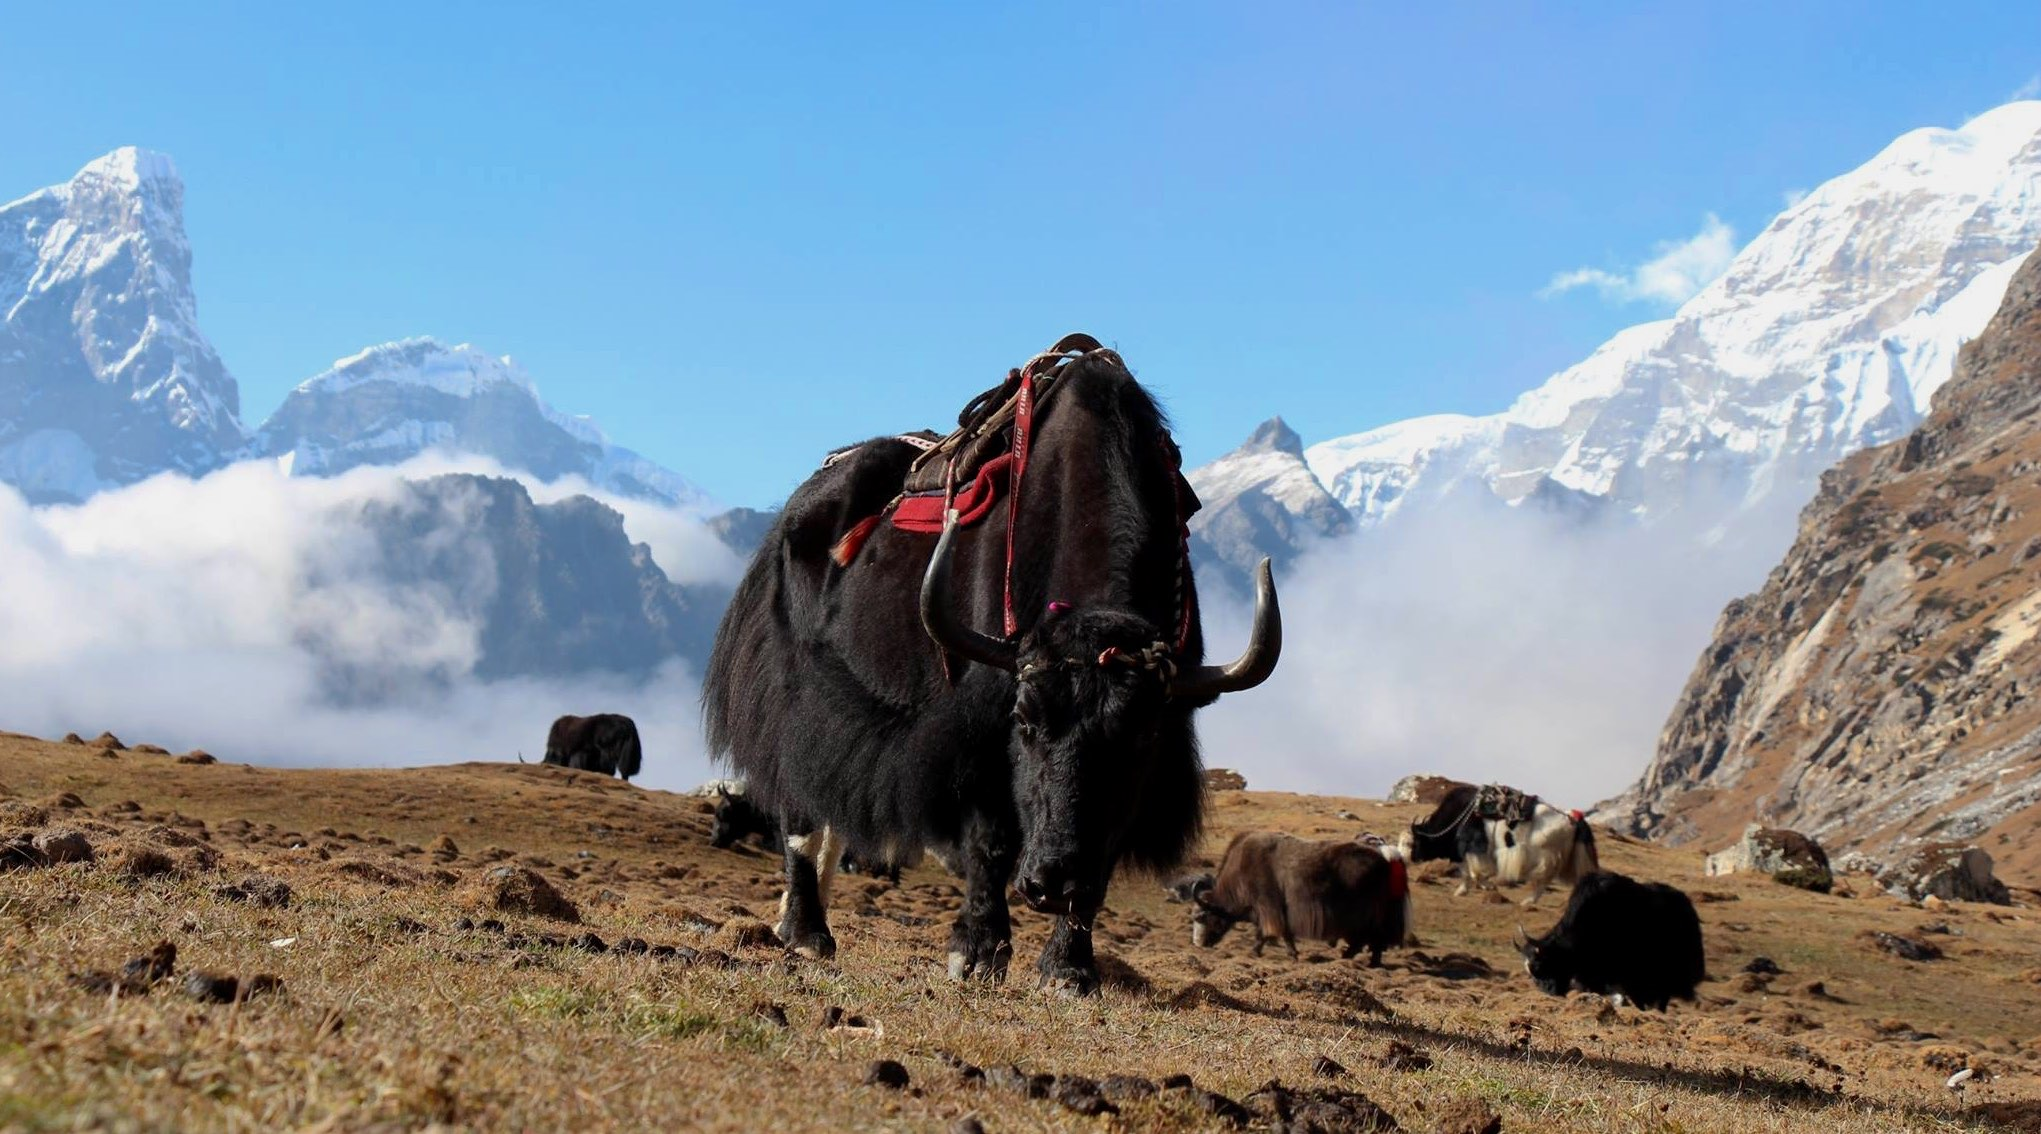 Yaks are used in the Himalayas as transport animals. During the Snowman Trek, yaks are used in the high altitude passes. Photo: Veronika Švecová